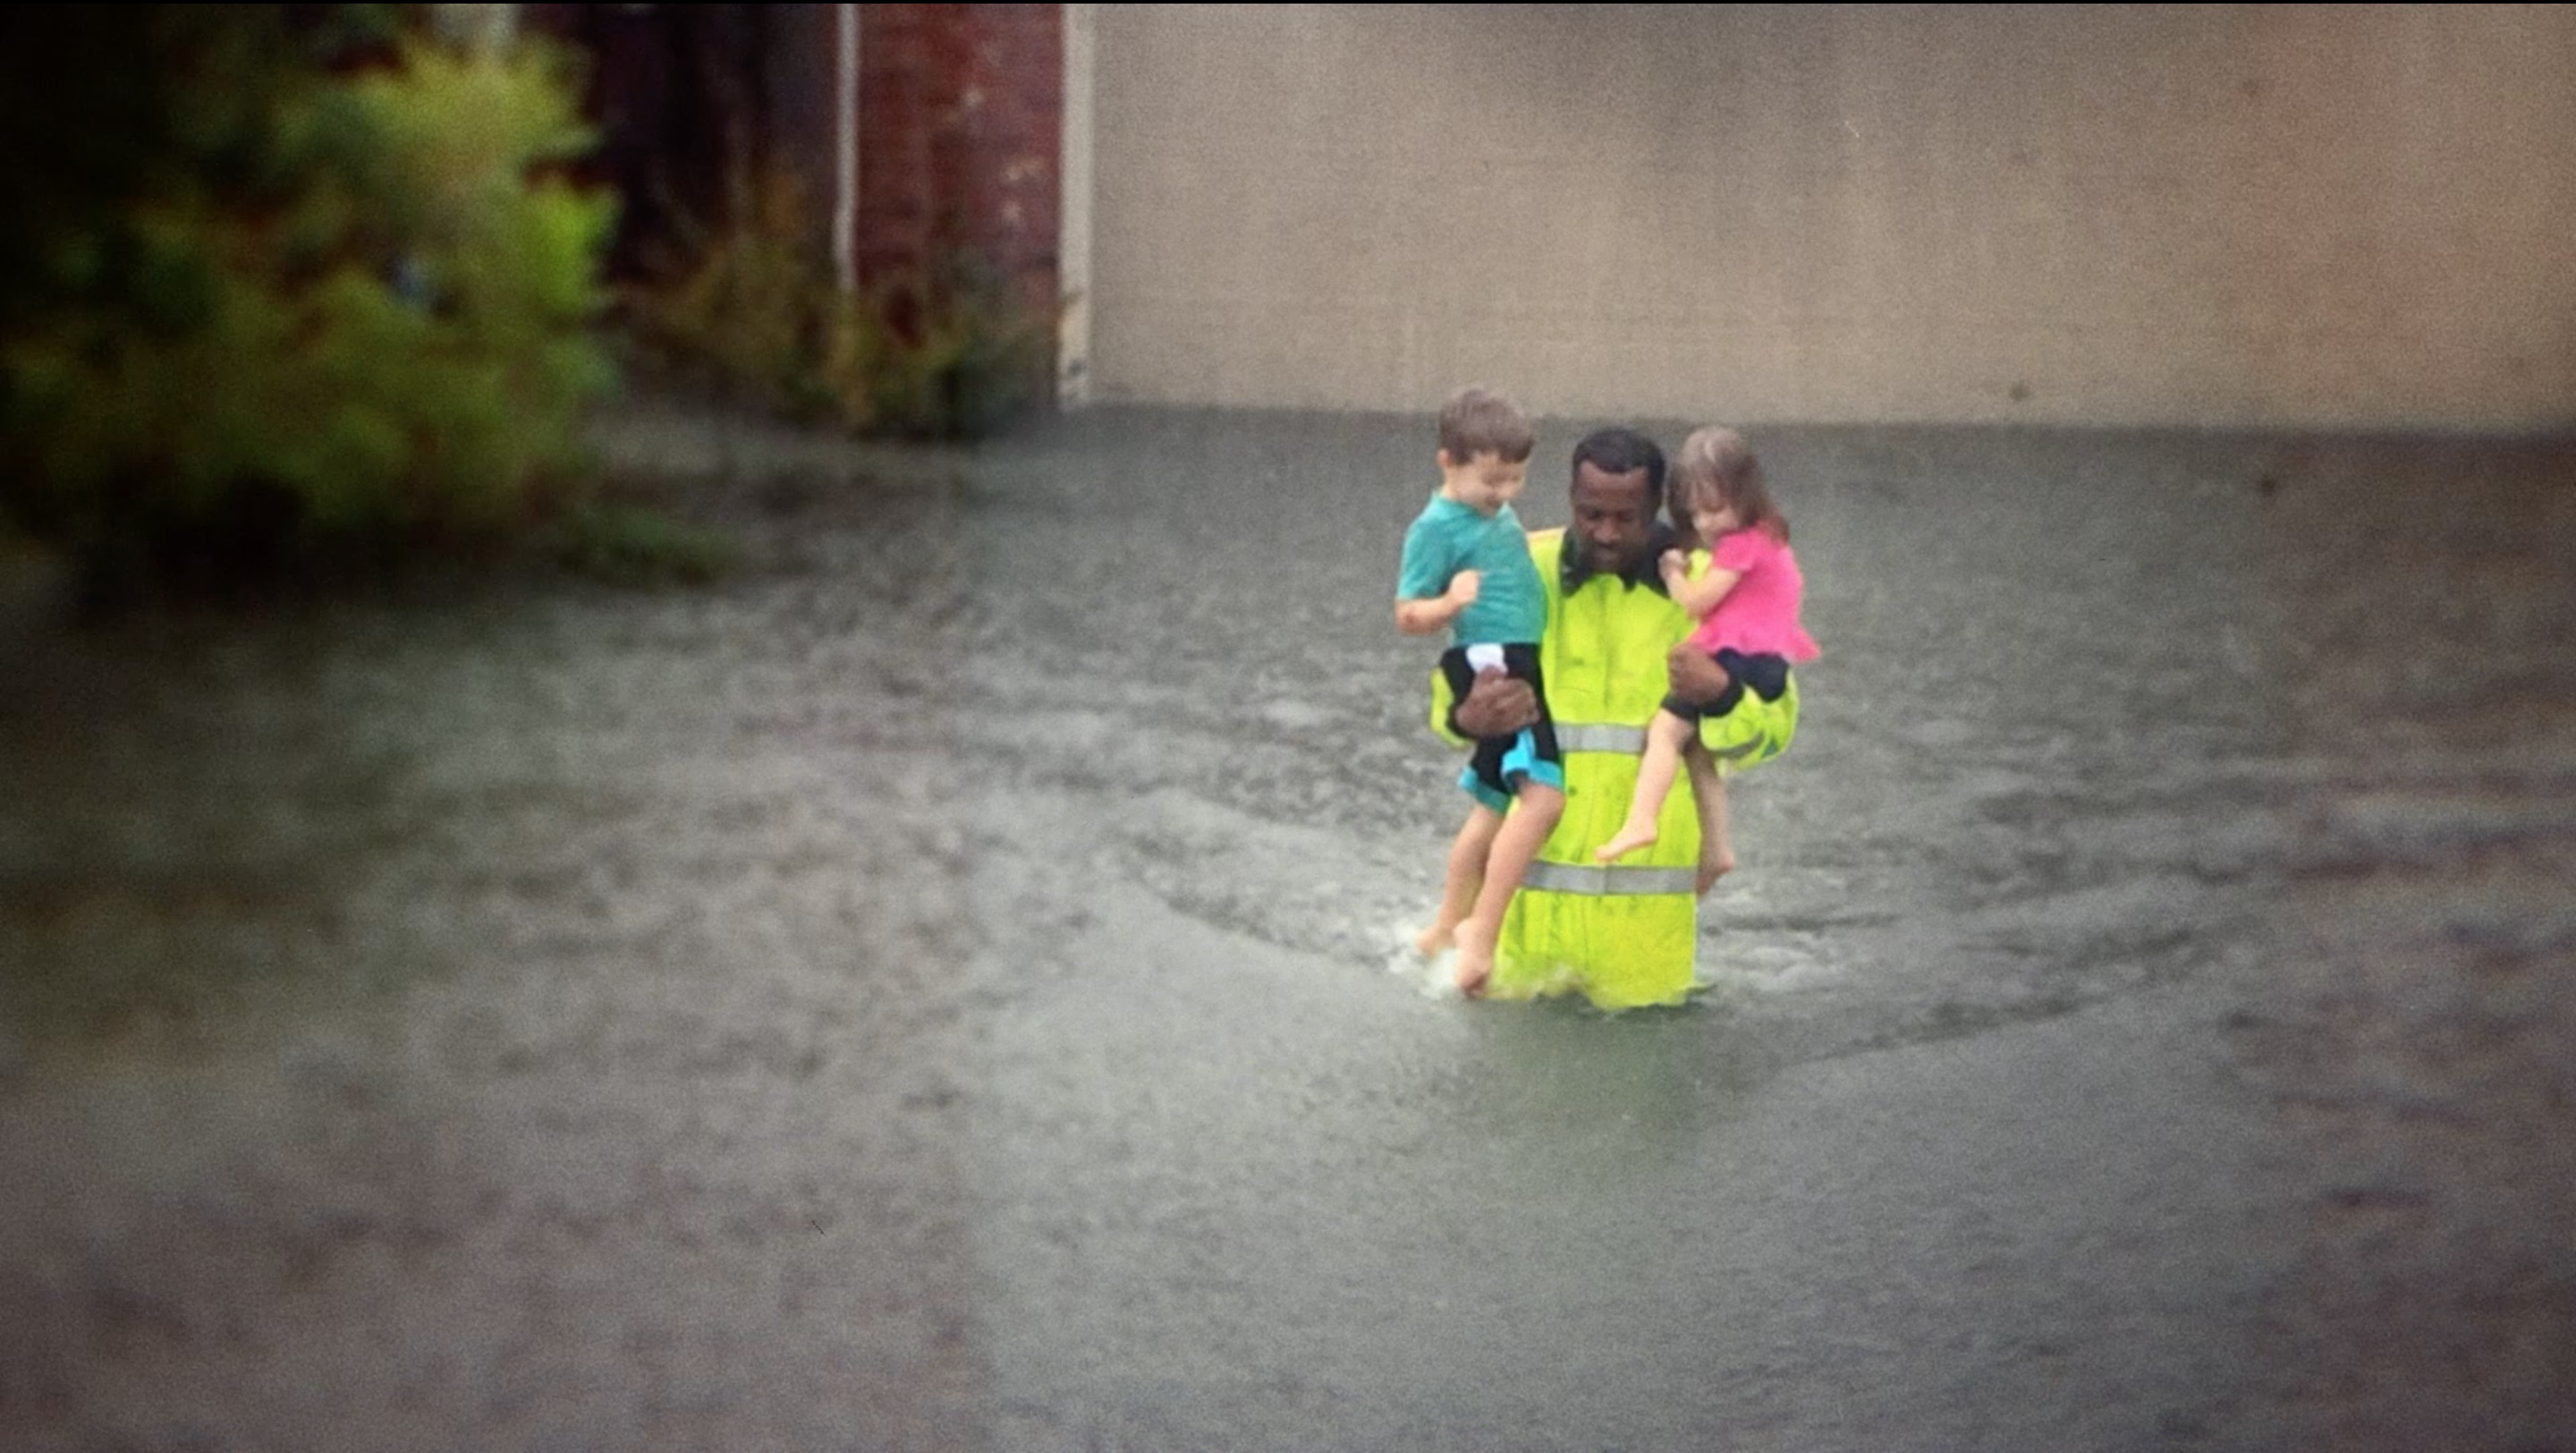 image of first responders in action